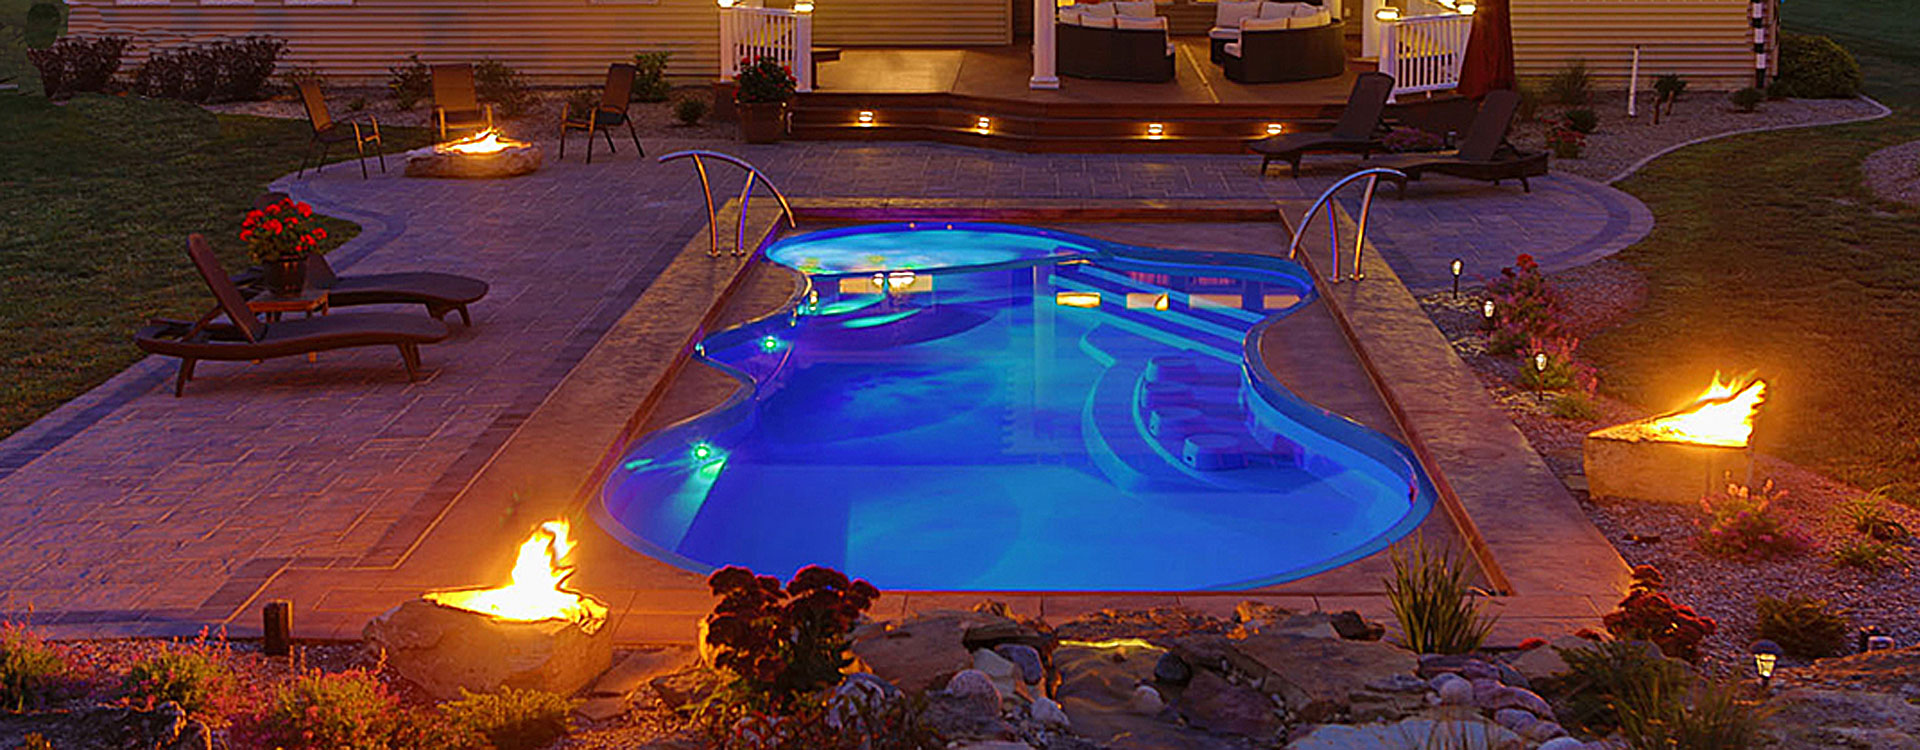 spa bluetooth spas backlit bench tubs system led p american with person tub hot subwoofer jet waterfall stereo and